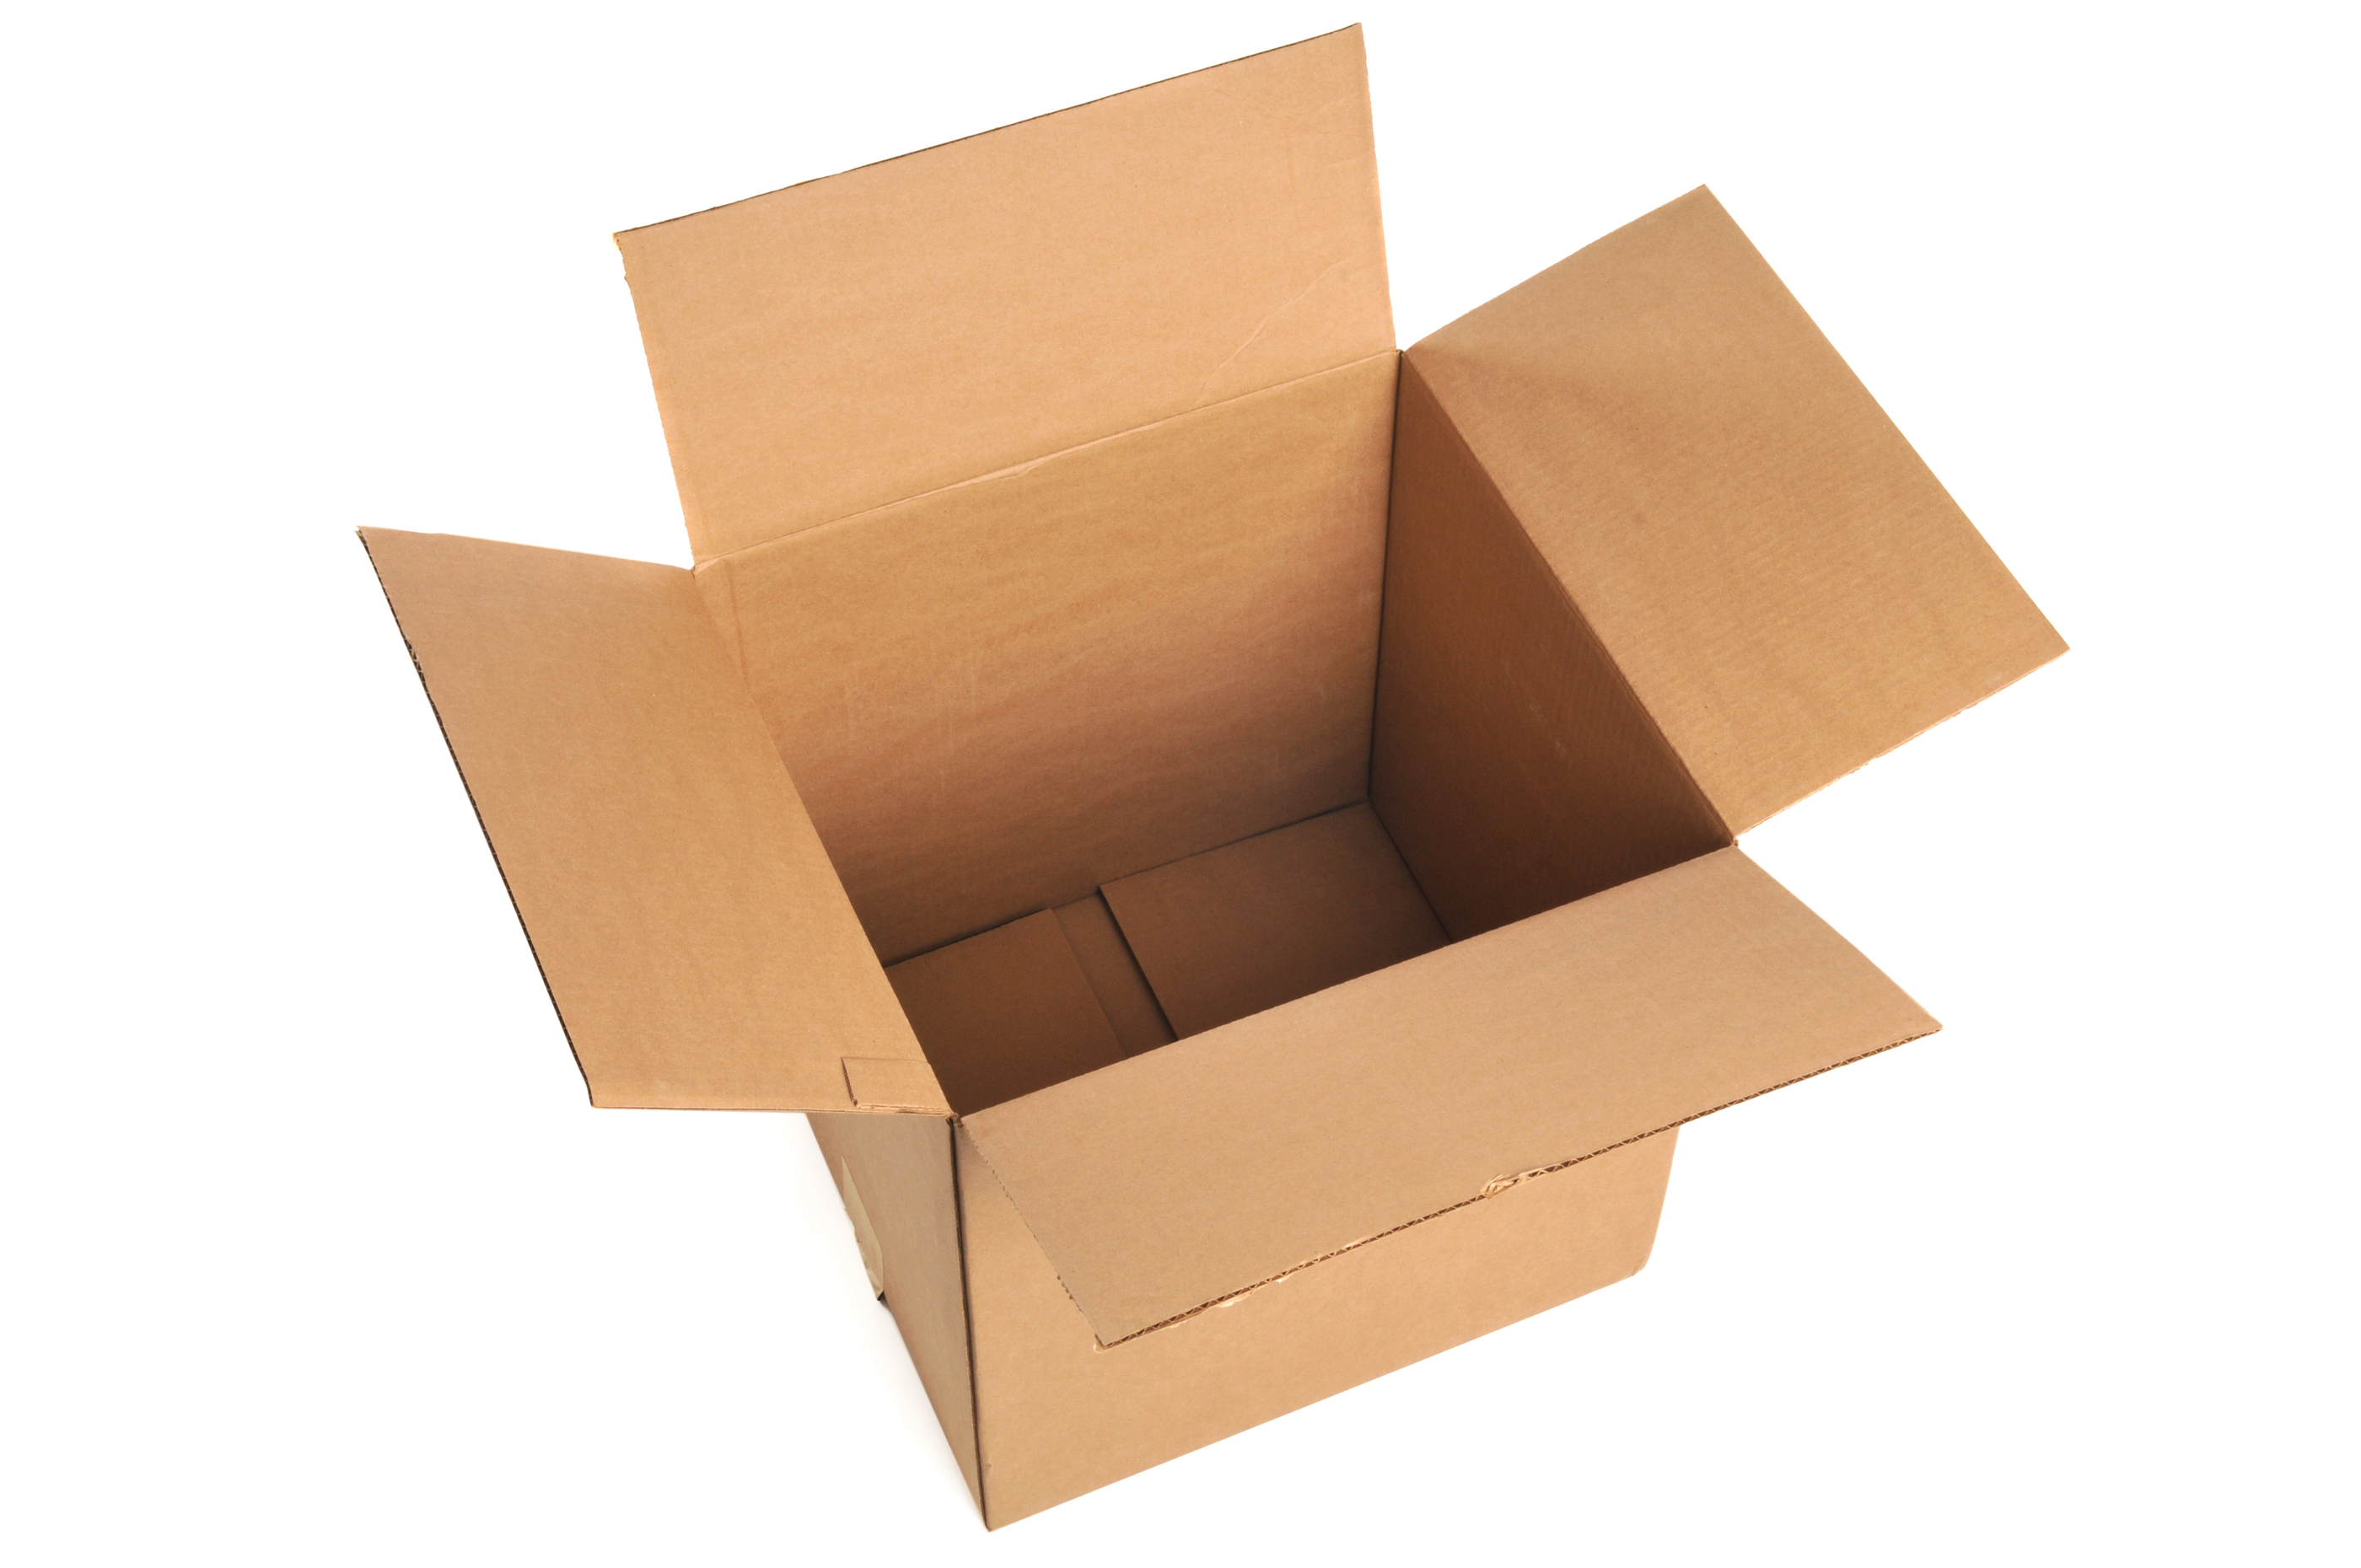 Opened cardboard box isolated on a white background